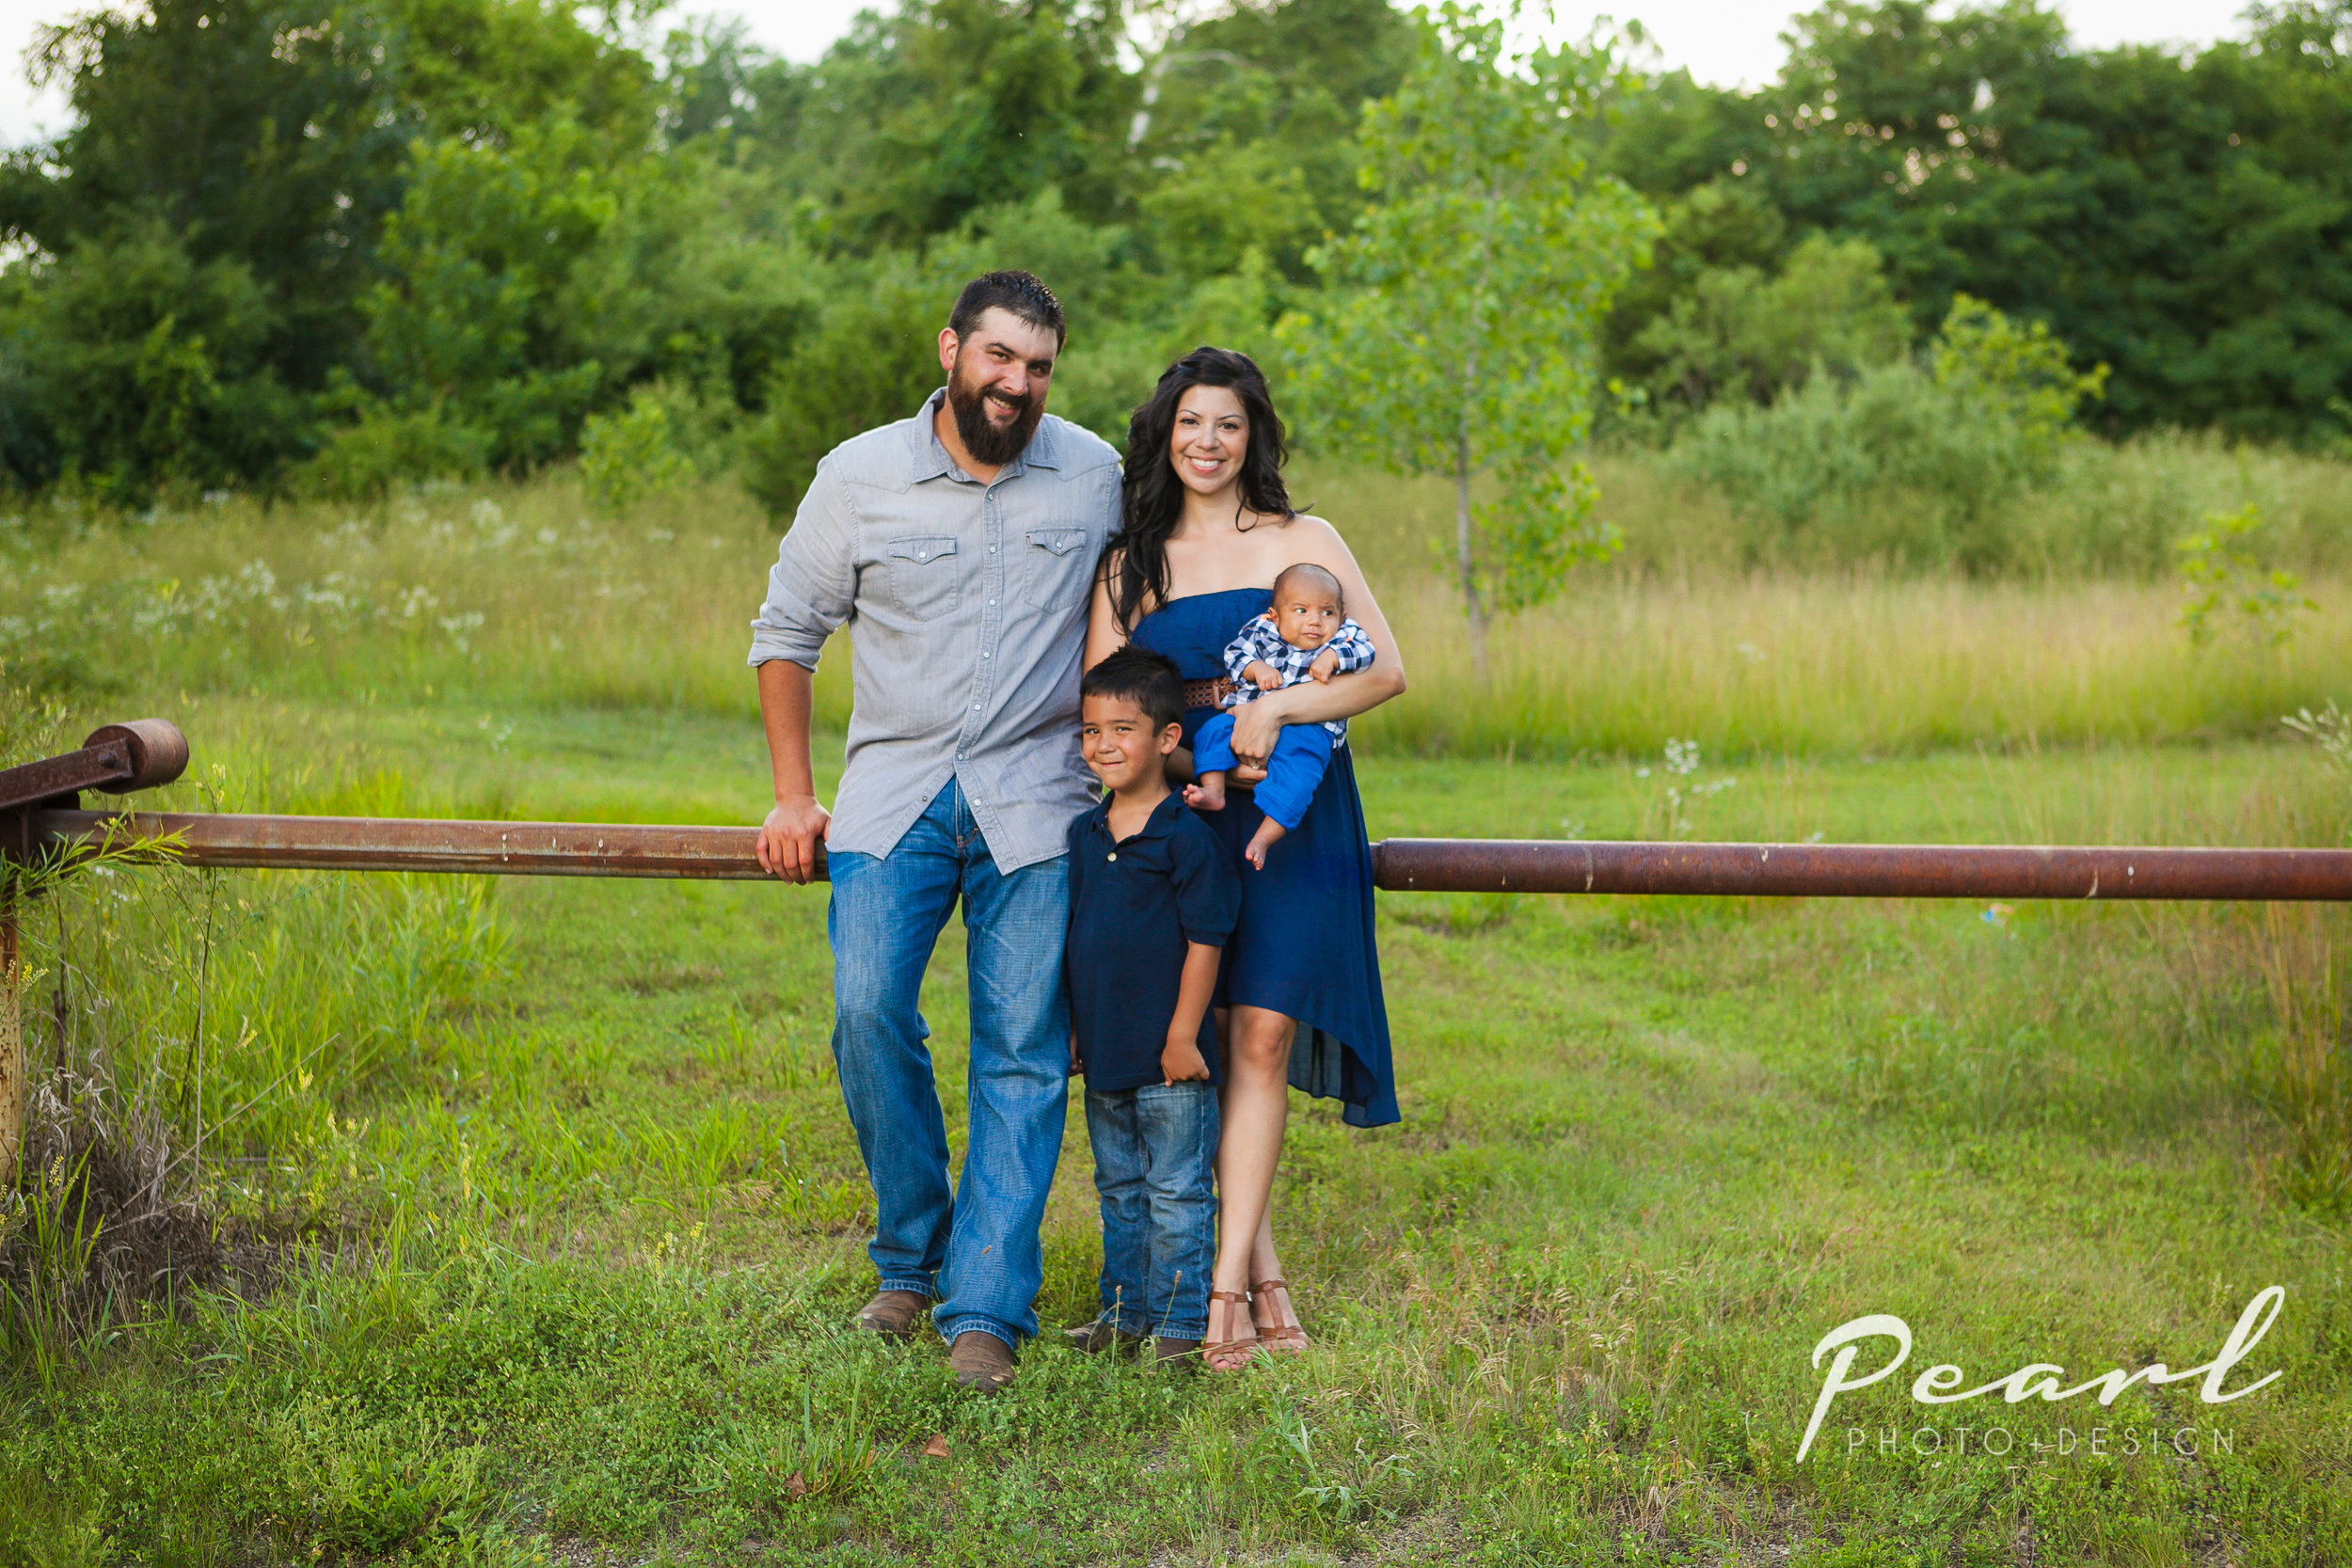 Family Portaits | Pearl Photo & Design